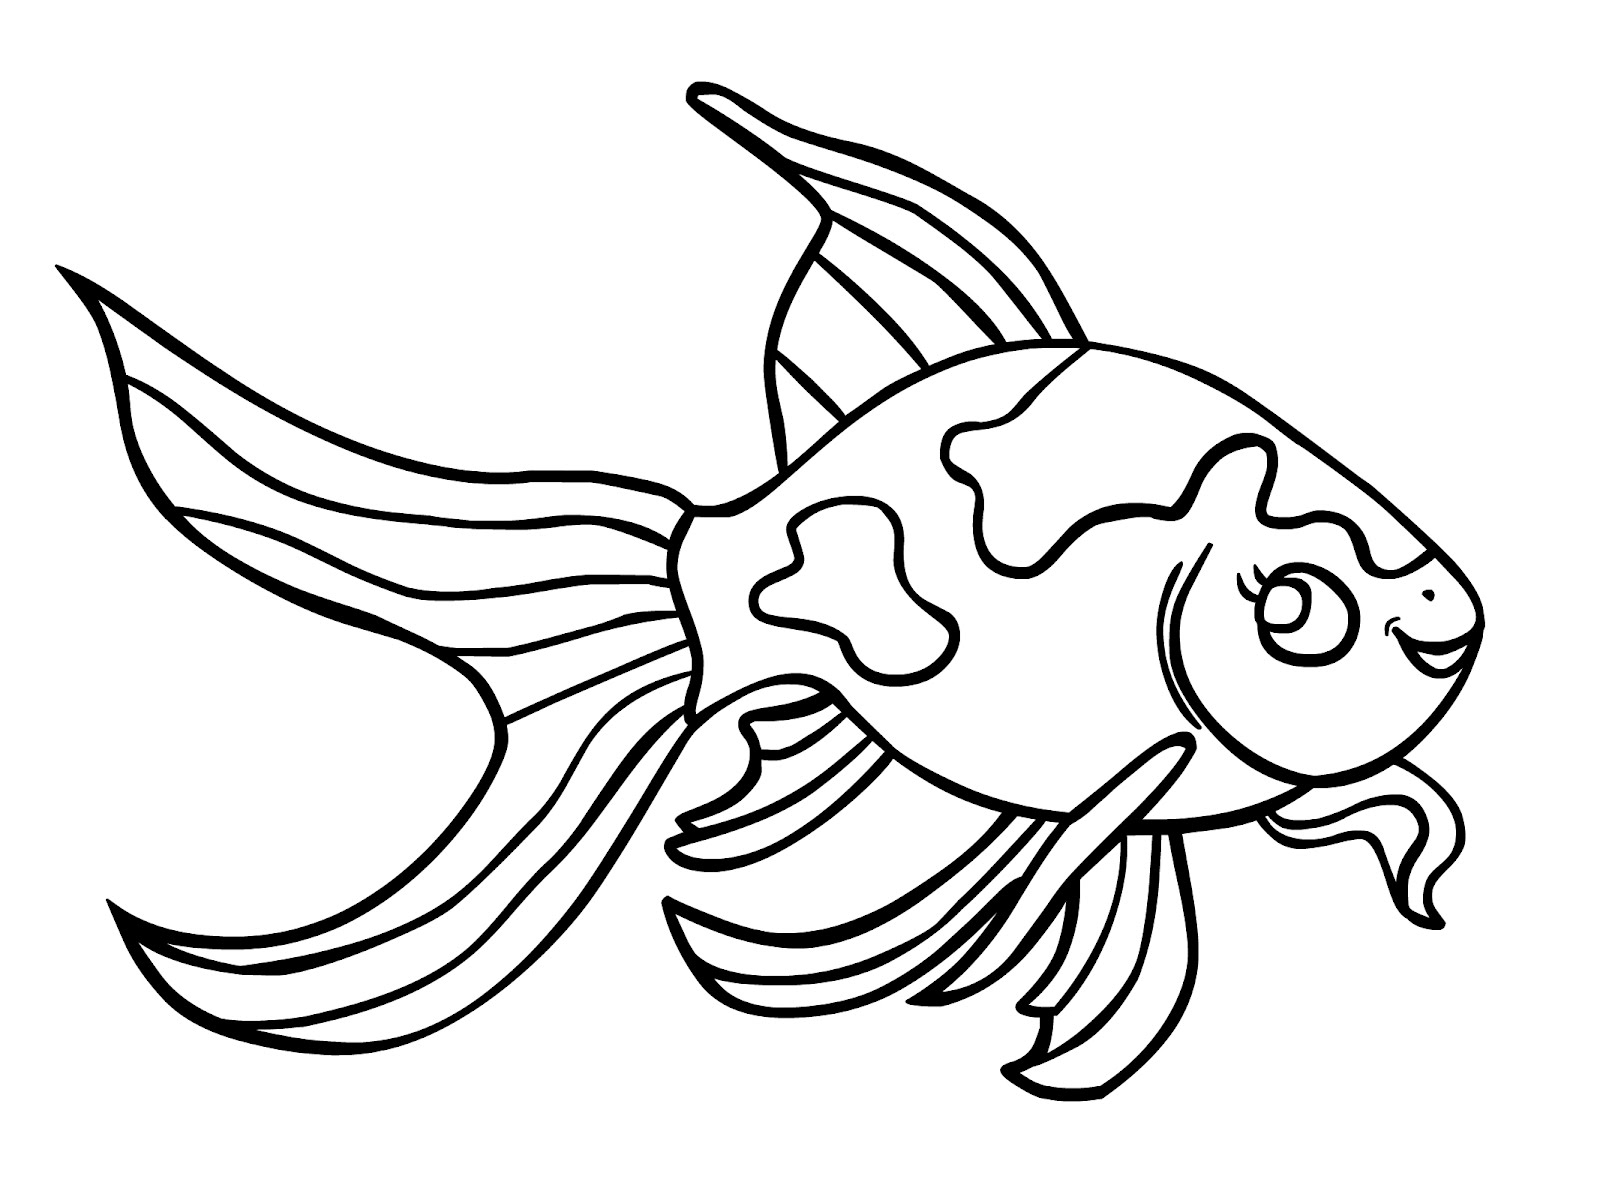 fist coloring pages - free printable goldfish coloring pages for kids